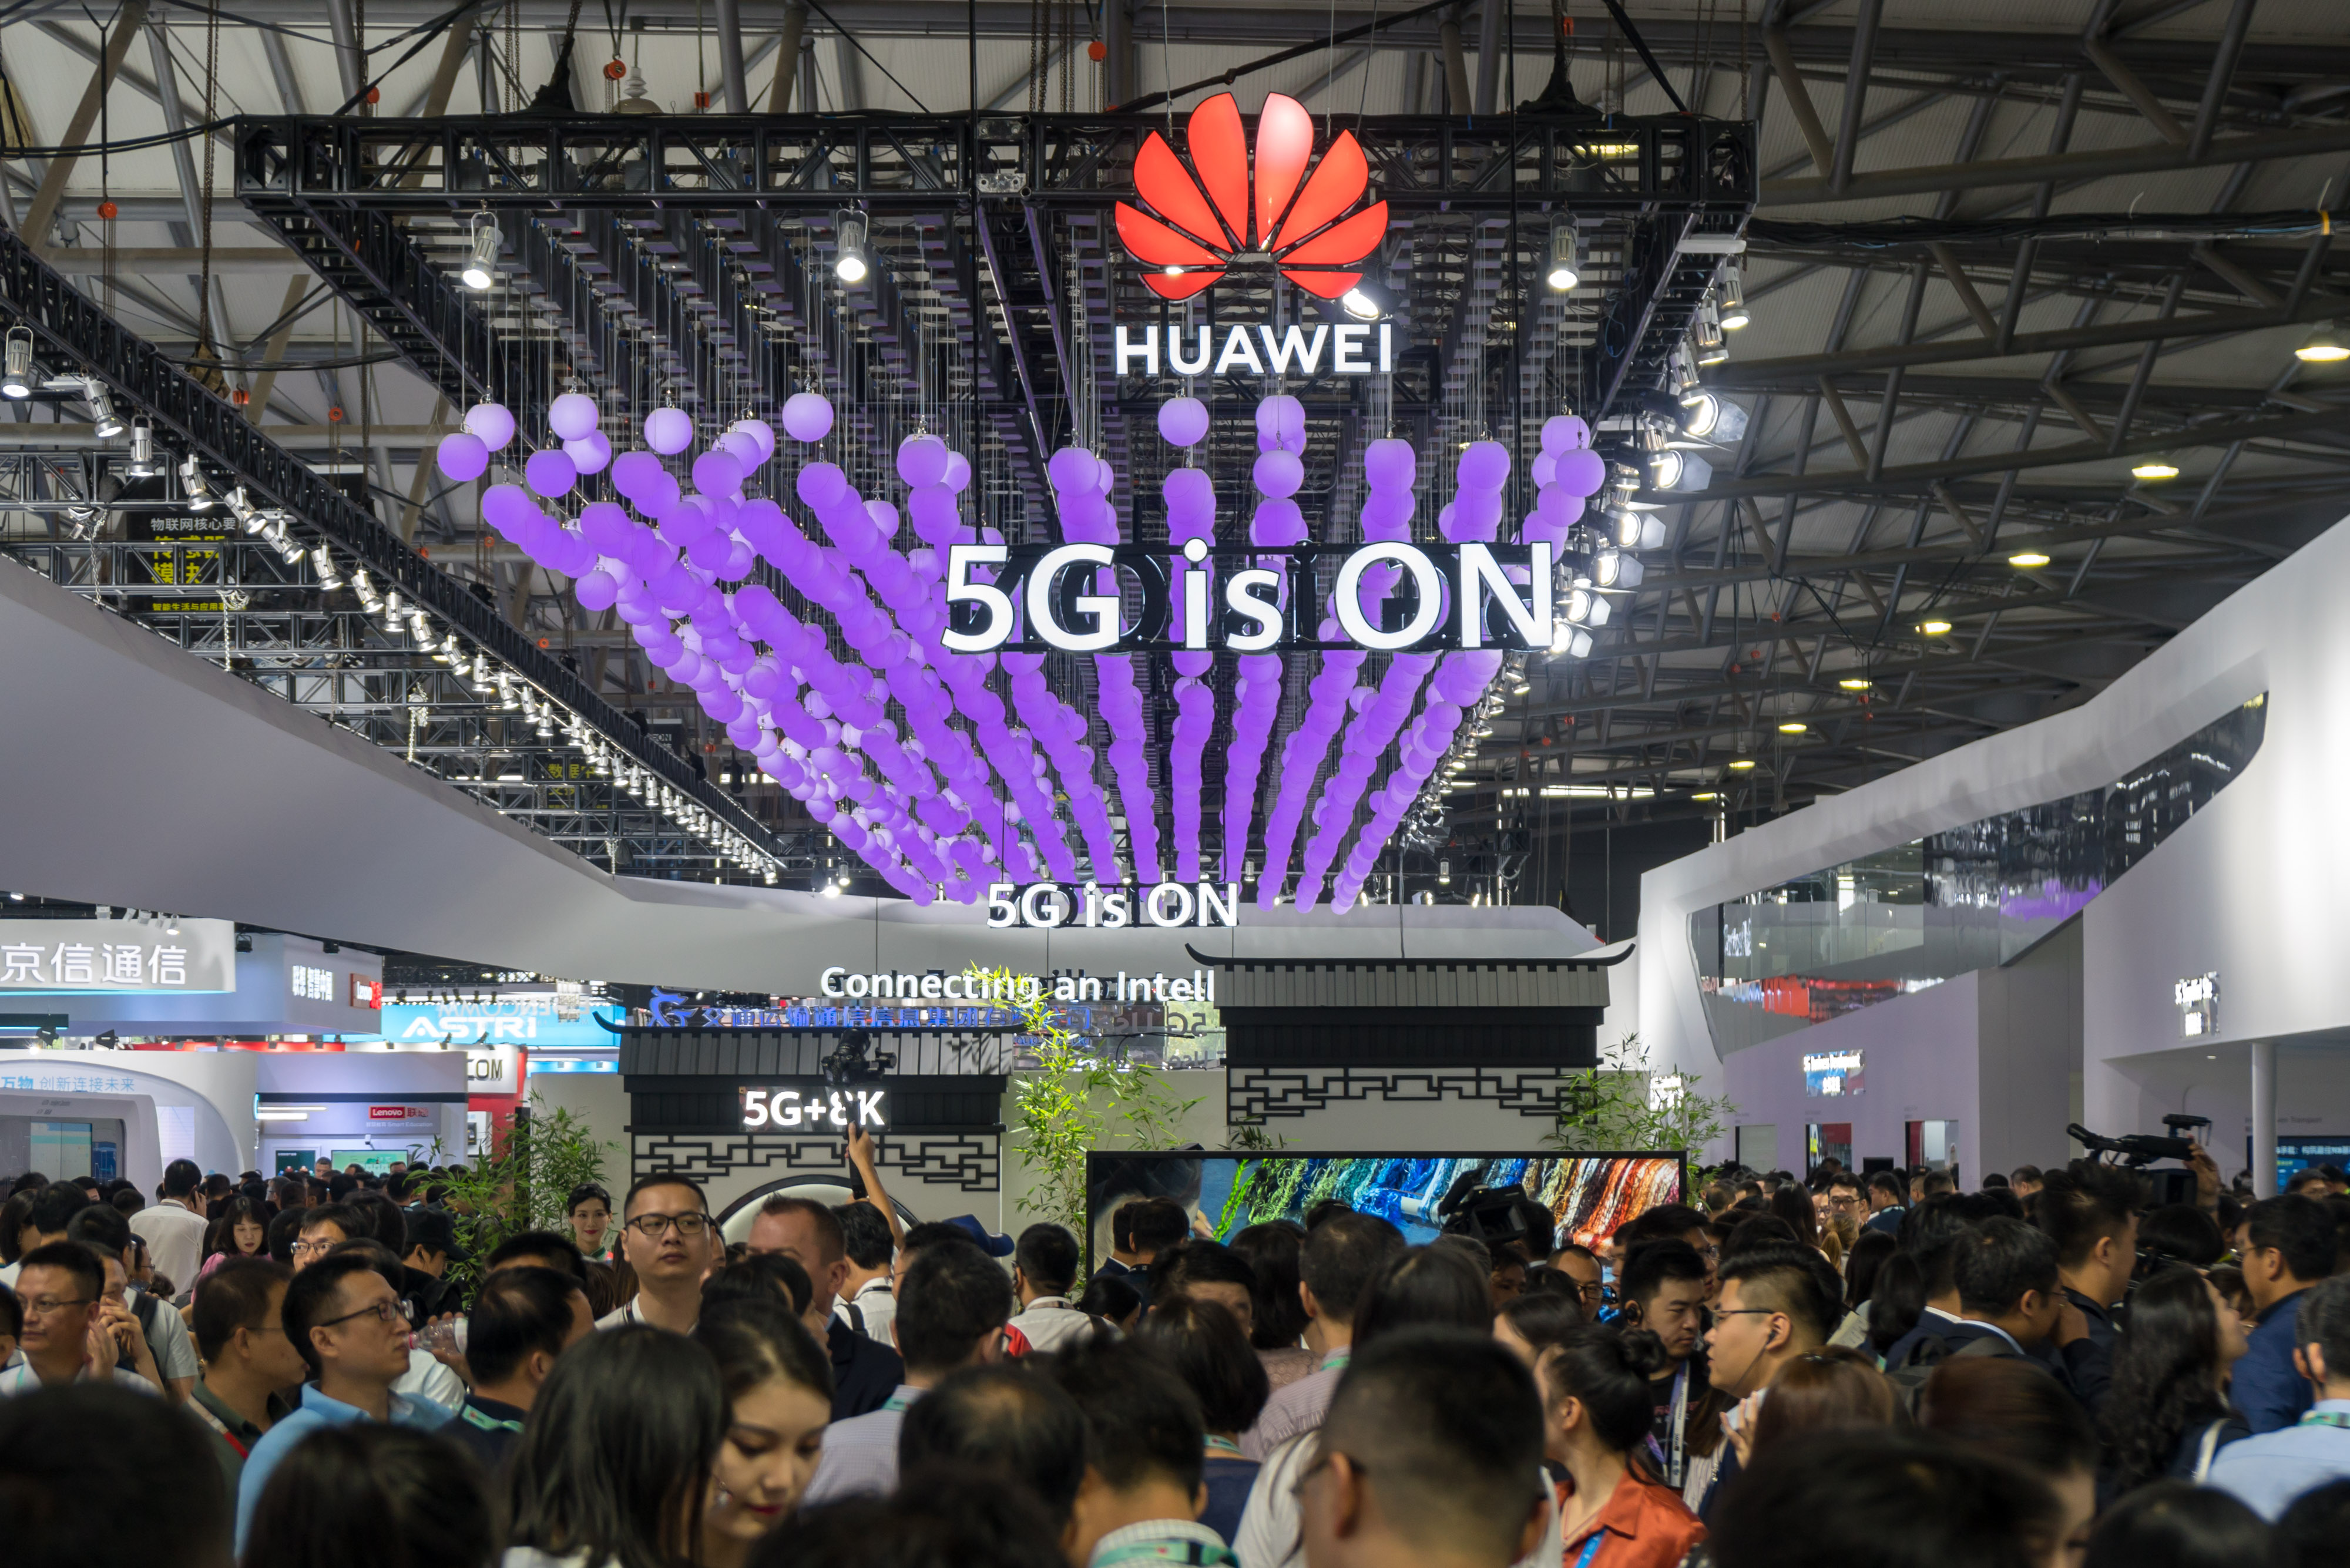 A new reason to worry about Huawei: It's been building North Korea's wireless networks